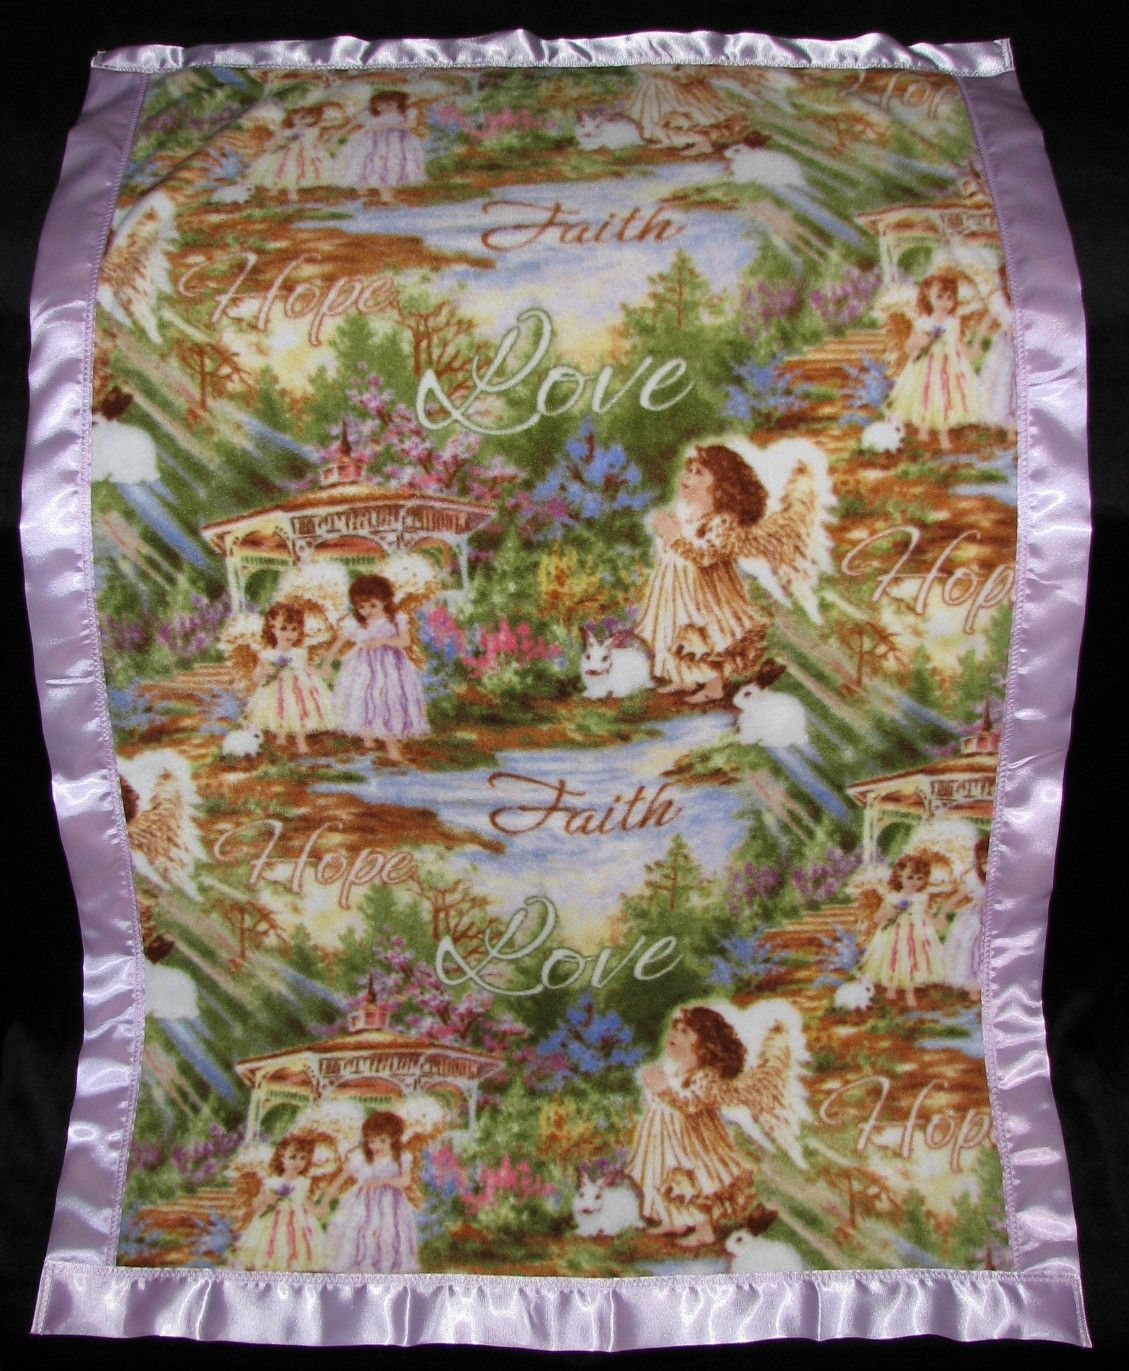 This Fleece blanket has Faith, Hope, Love on it and is made from 100% Polyester Fleece with a two inch satin trim around the blanket (all our blanket trims and fleeces are 100% Polyester). We will personalize the blanket which is included in the price with the person's first name (embroidery letters are about 2 inch tall). We are in no way a sponsor or affiliated with the licensee or manufacturer. We Guarantee Quality in our blankets. Thank you for your Business.